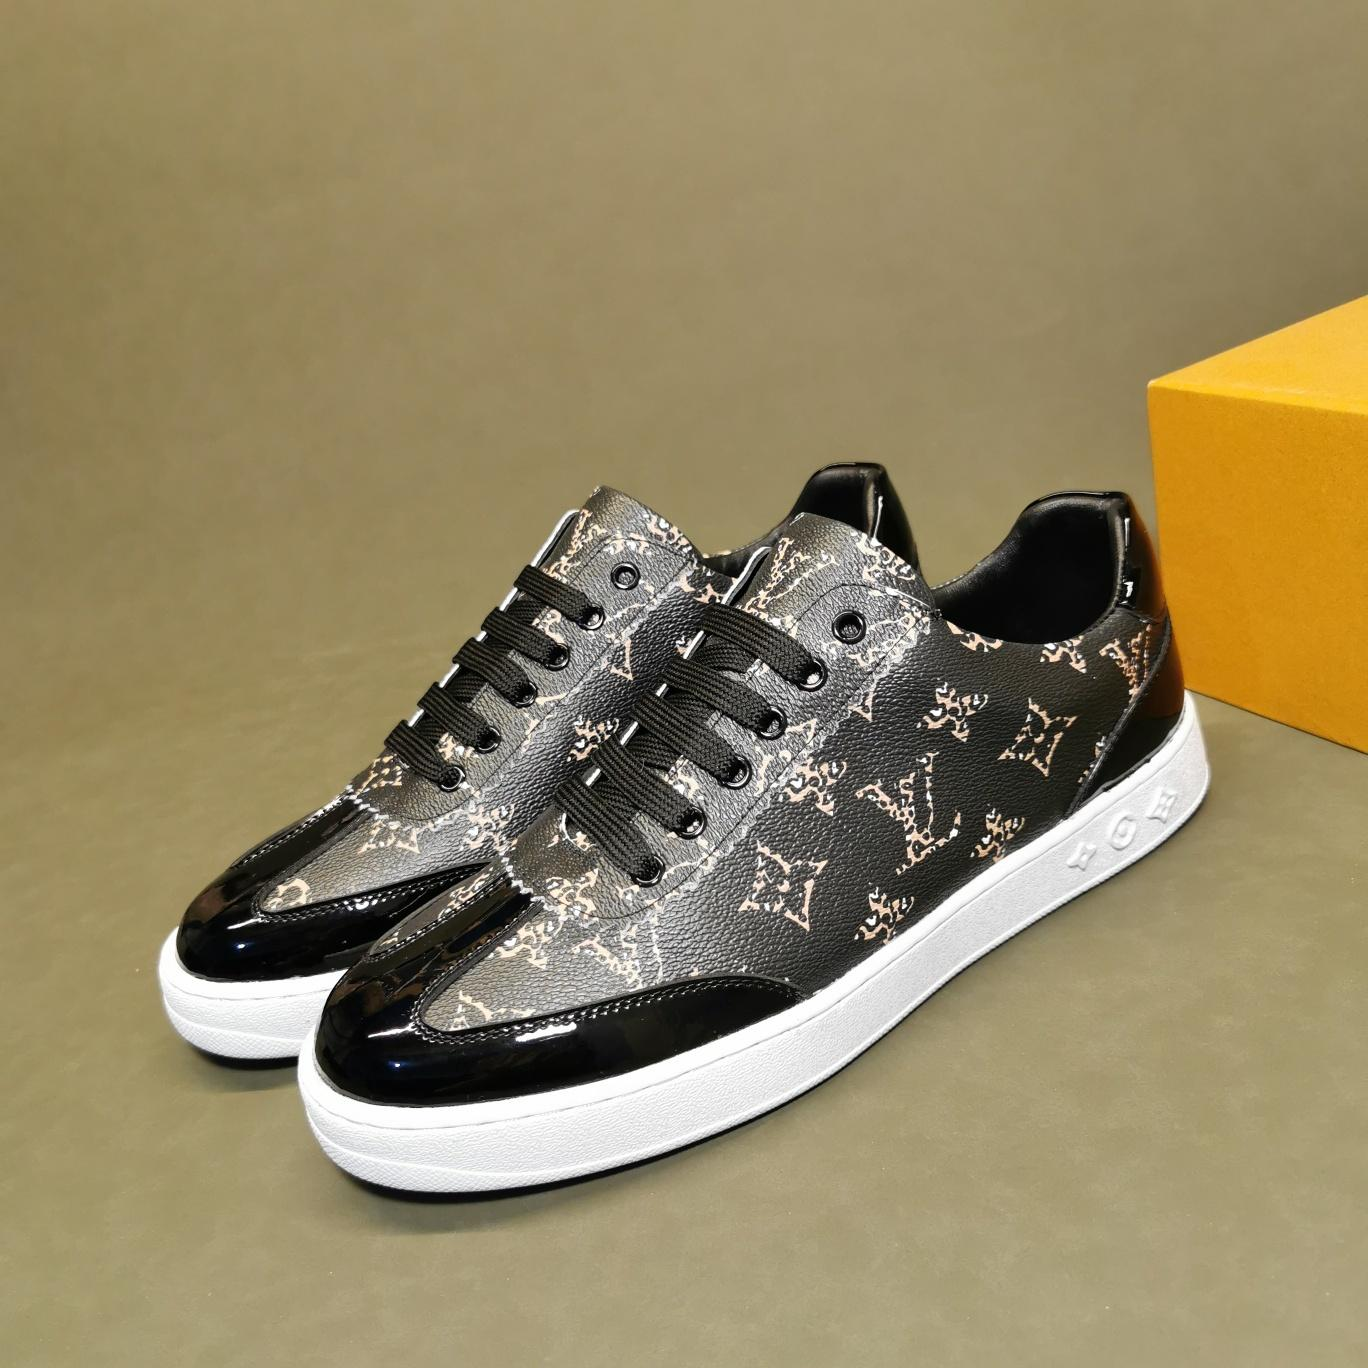 louis vuitton trainer